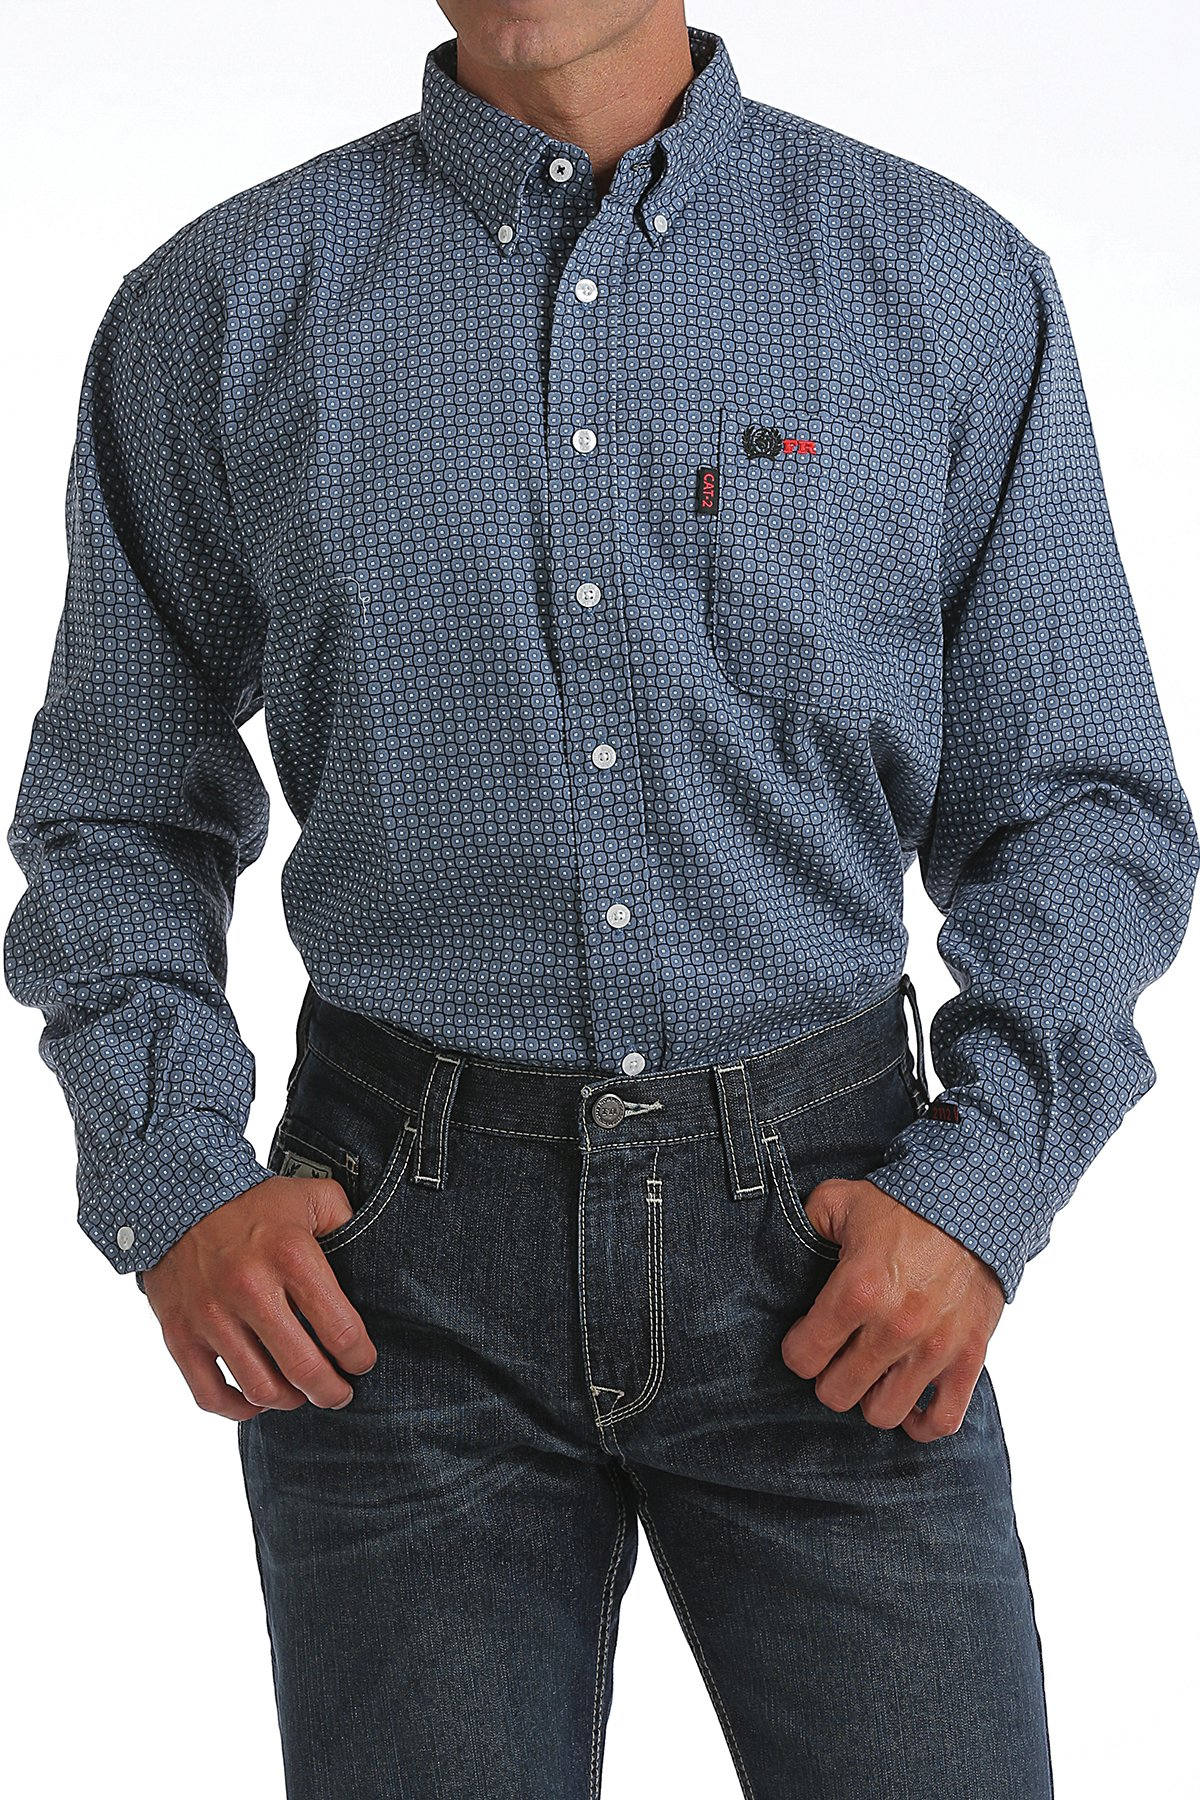 CINCH FR WRX BLUE GEOMETRIC PRINT WORK SHIRT-Cinch WRX